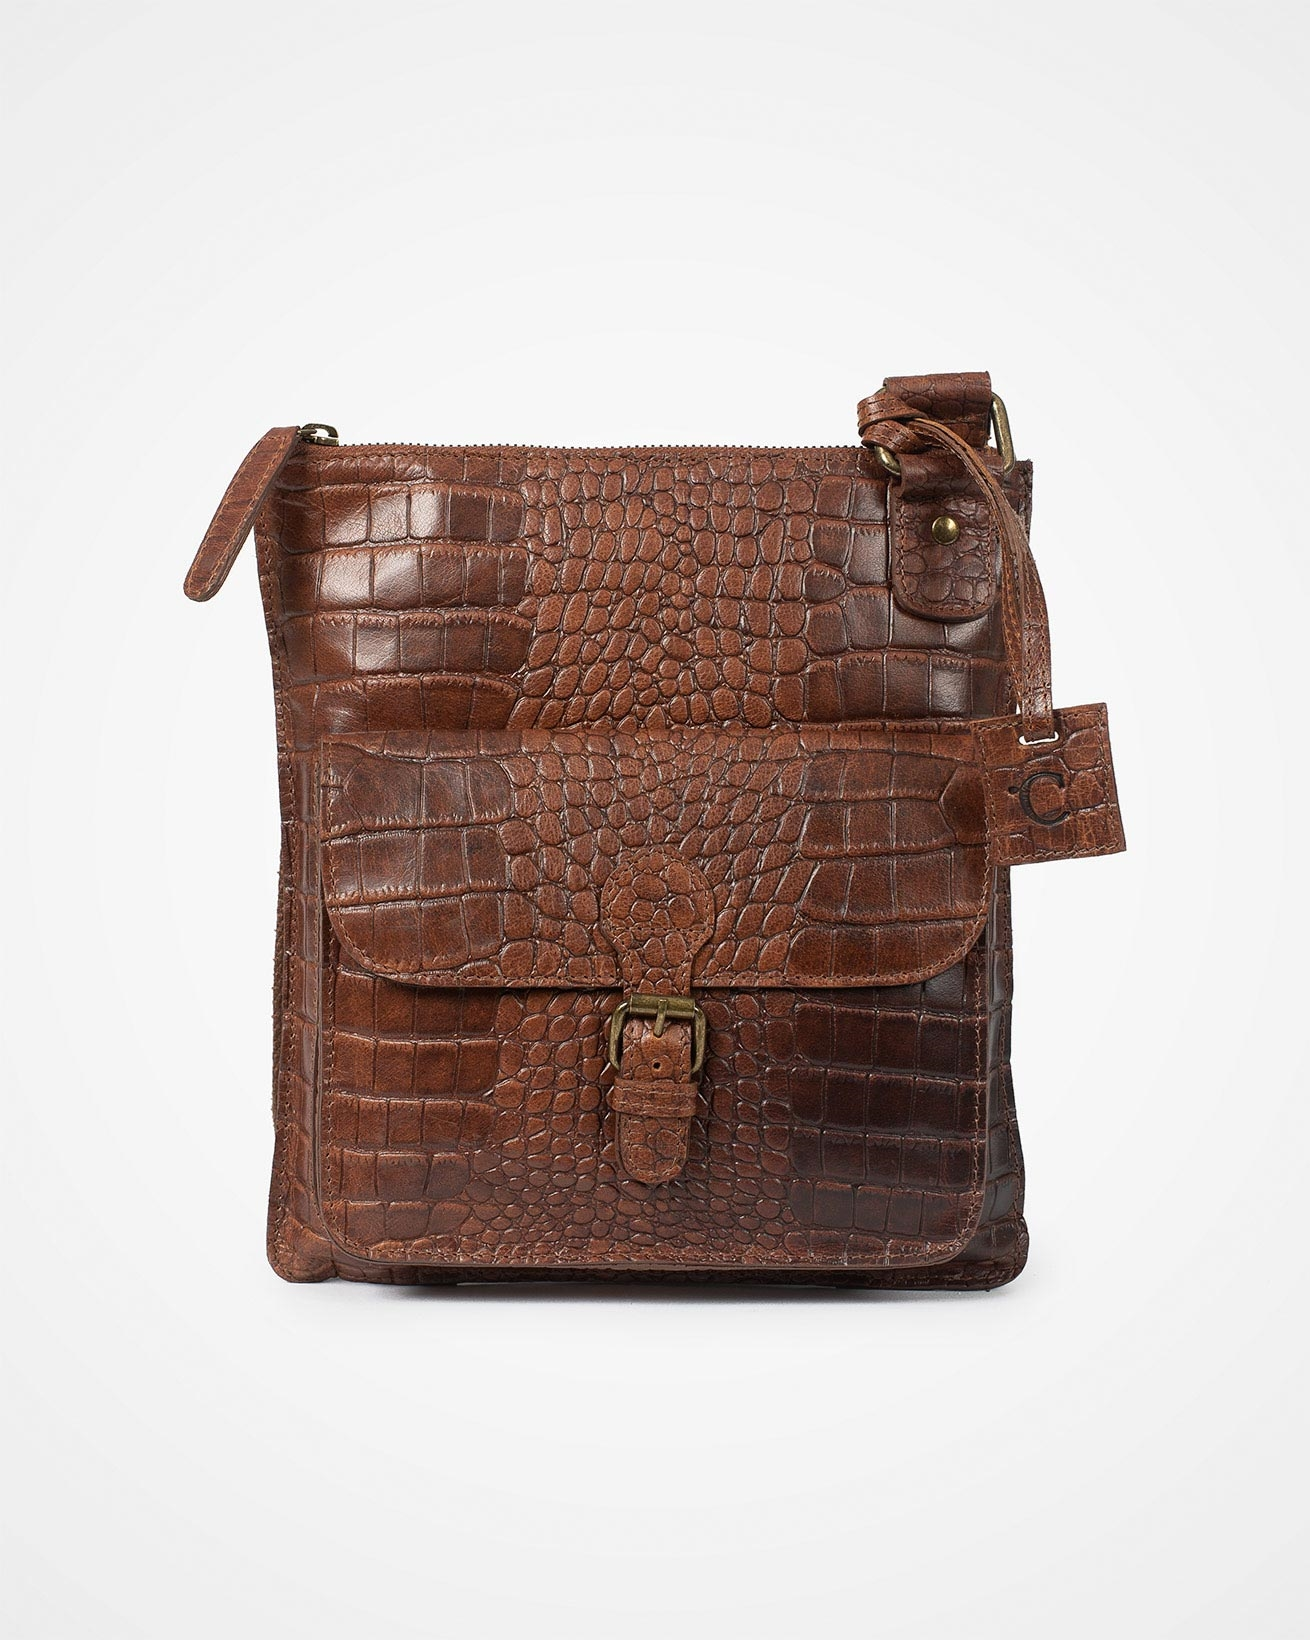 6224_rigger-bag_burnt-honey_front.jpg